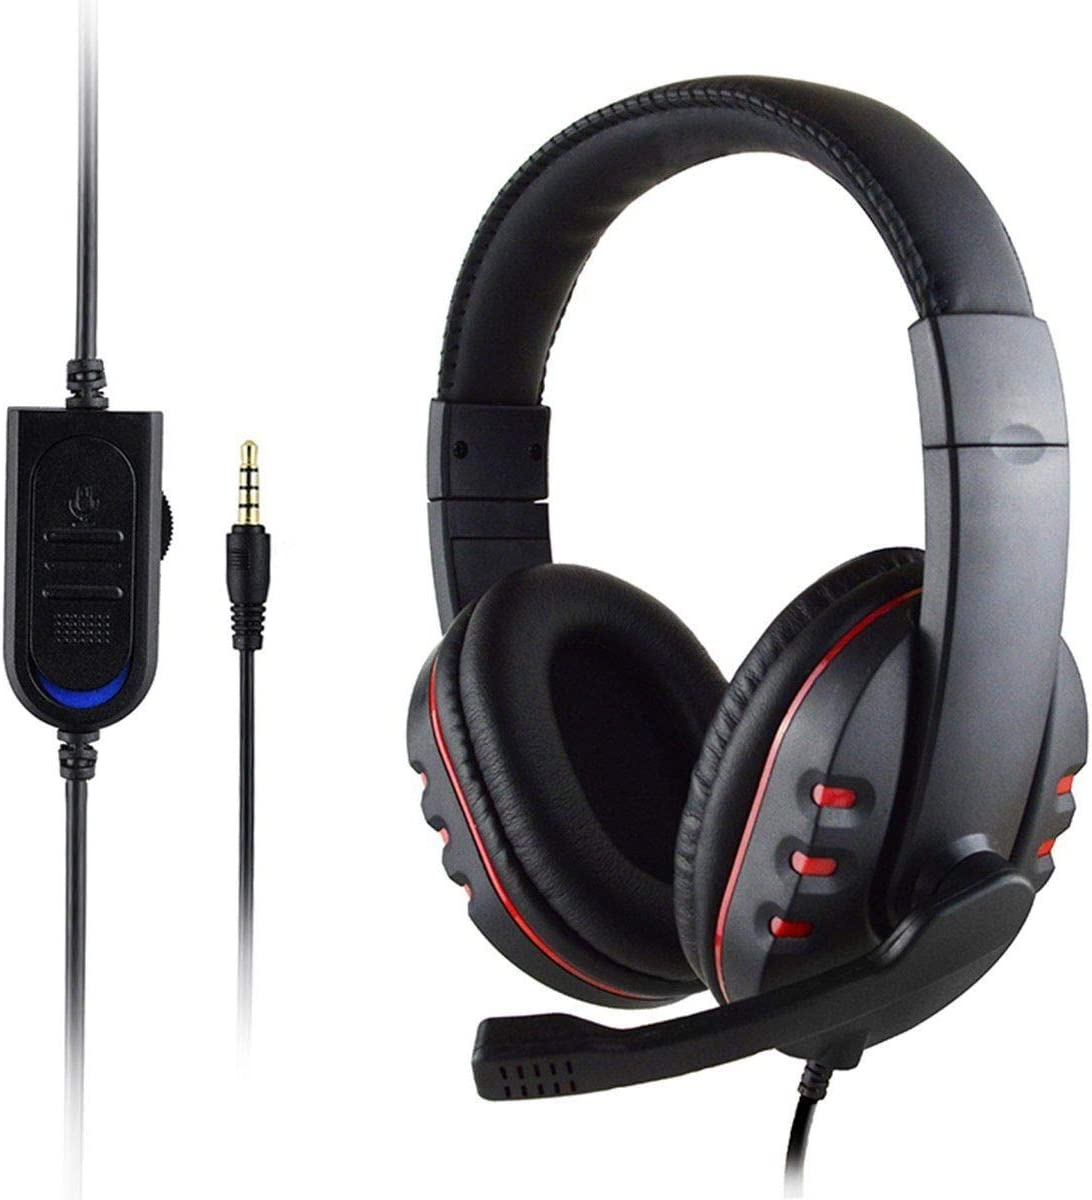 Camidy Over Ear Headphones with Mic for Gaming,3.5mm Jack Wired Headset with Stereo Surround Microphone for PS4 Laptop Phones Home